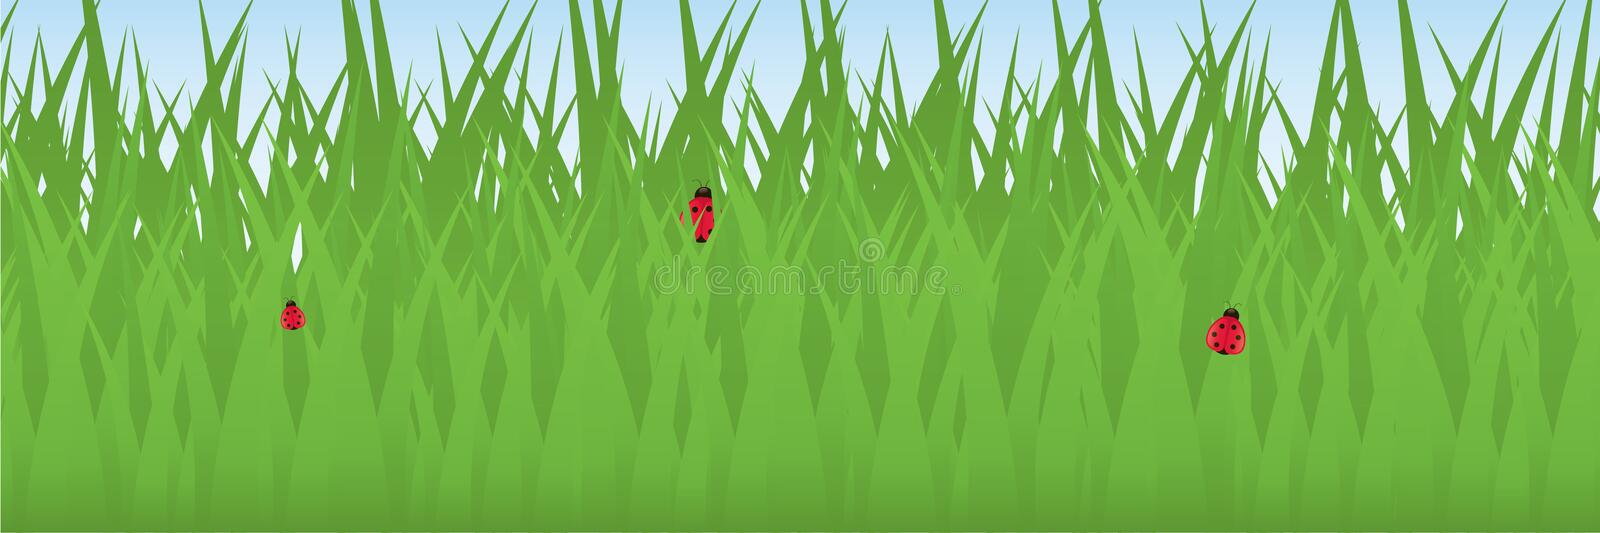 Ladybugs In Grass Royalty Free Stock Photo